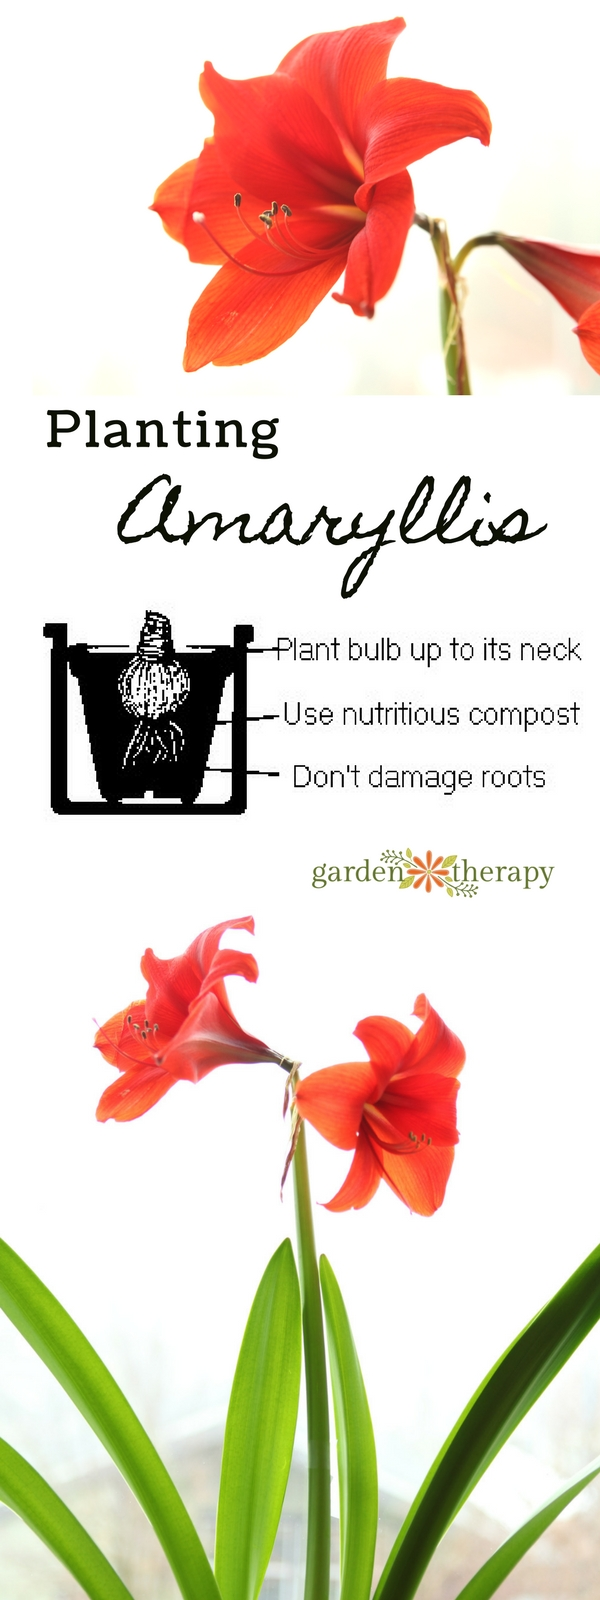 How to Grow Amaryllis in a Jar